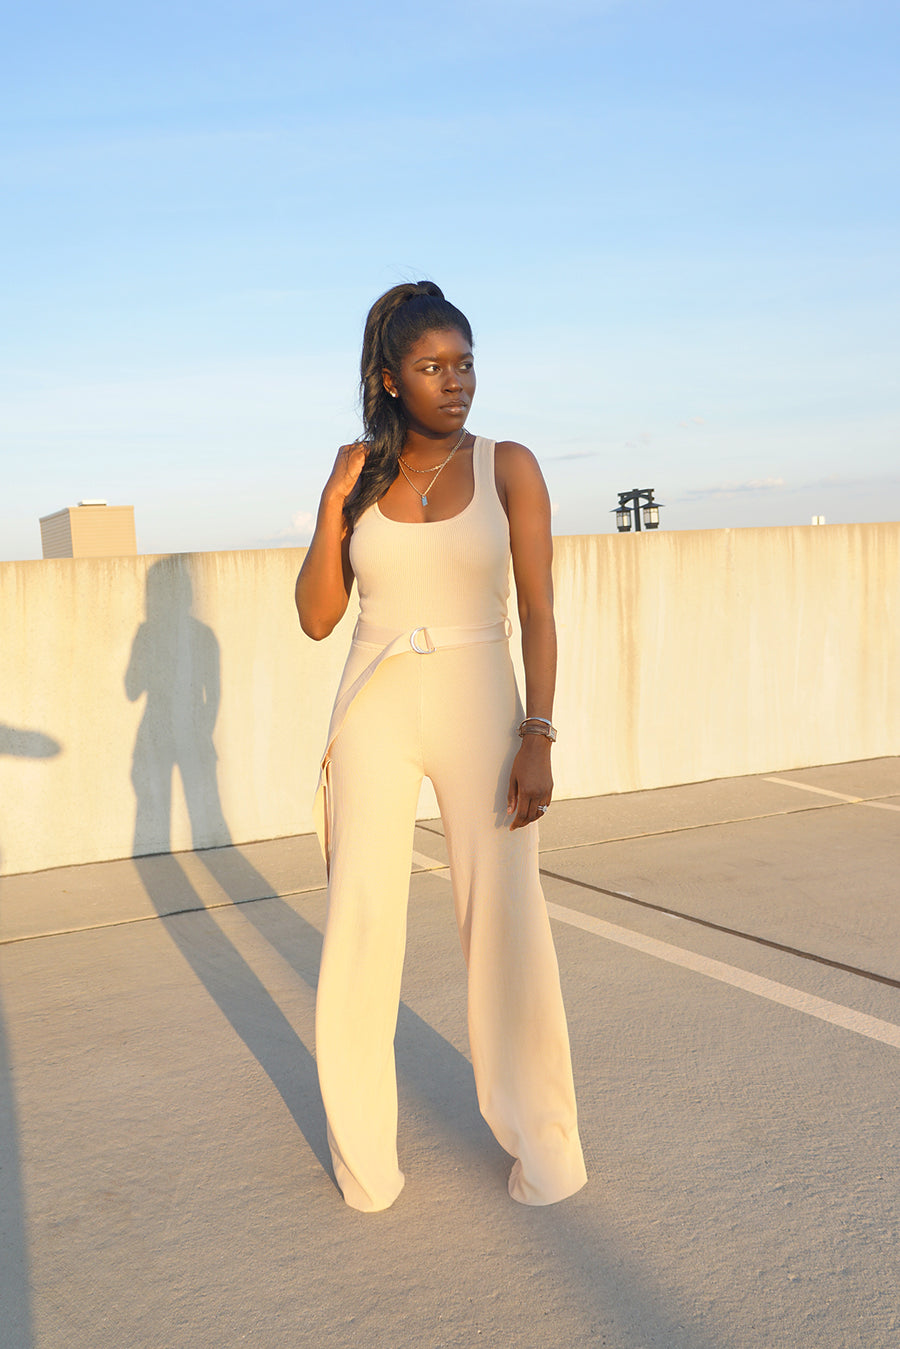 Ribbed Knit Cargo Jumpsuit - FINAL SALEClothes, Rompers & JumpsuitsGreige - Greige